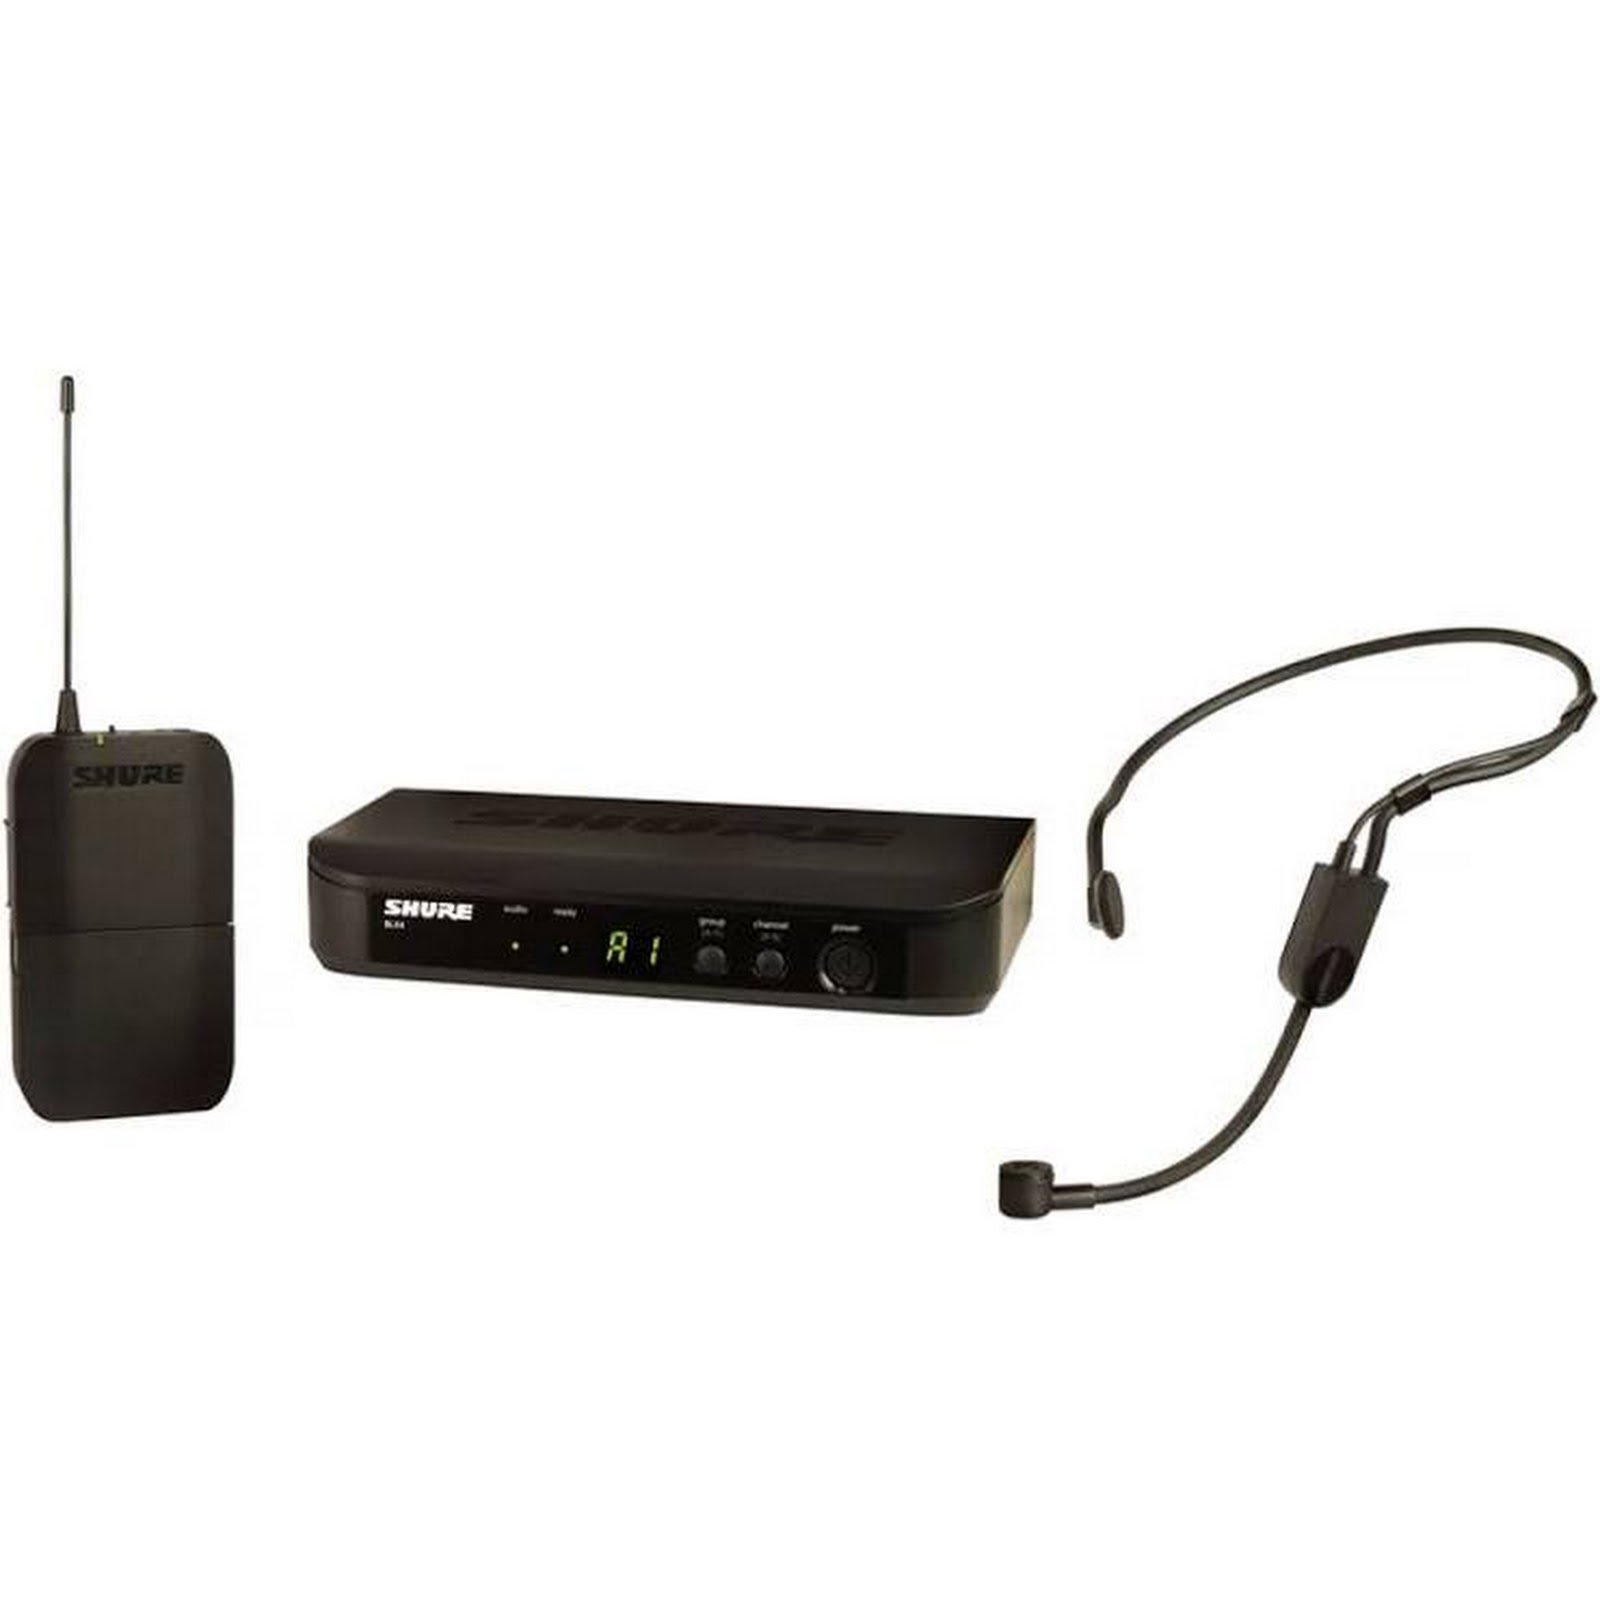 SHURE BLX14/P31-H9 WIRELESS HEADSET MICROPHONE SYSTEM BAND H9